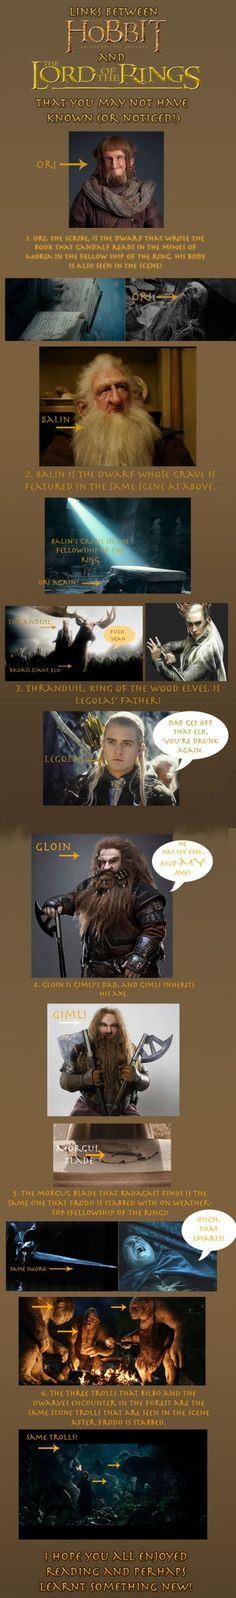 Awesome links between Hobbit and LOTR